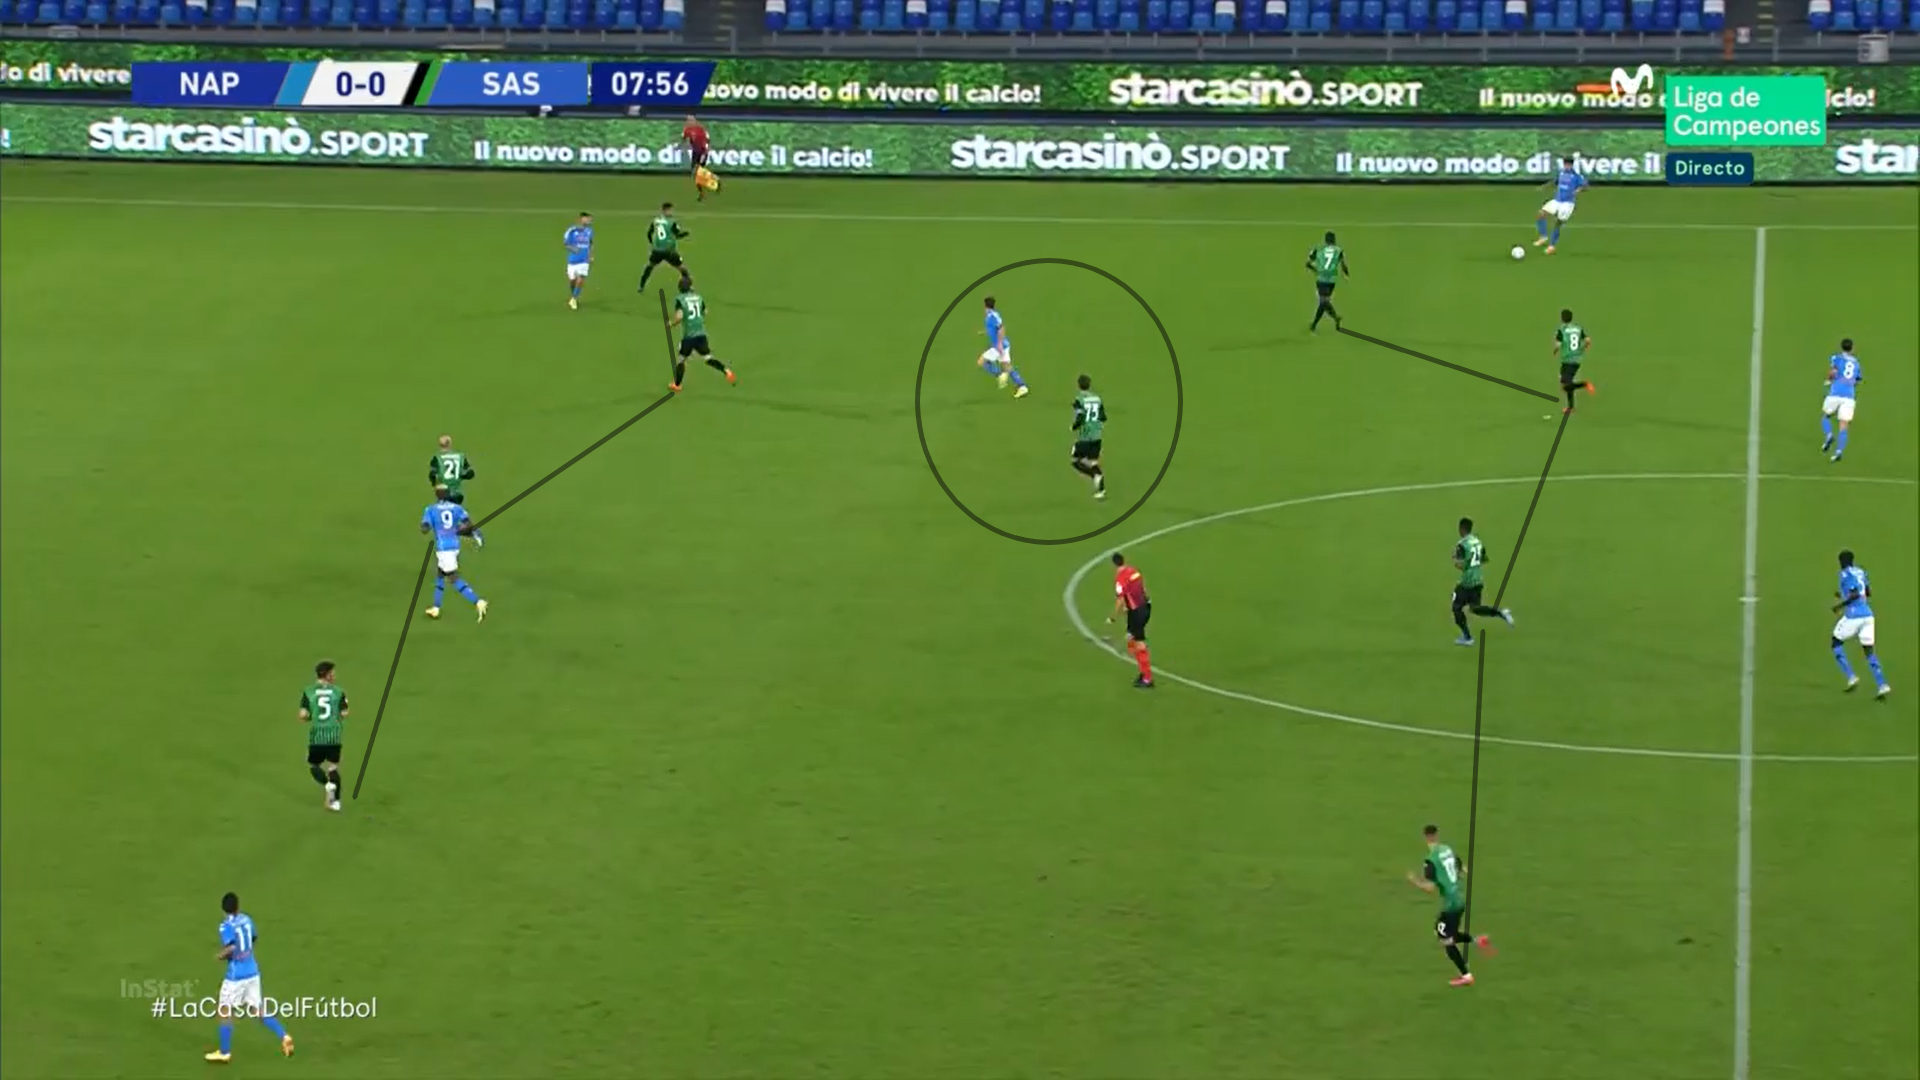 Serie A 2020/21: Napoli vs Sassuolo – tactical analysis tactics